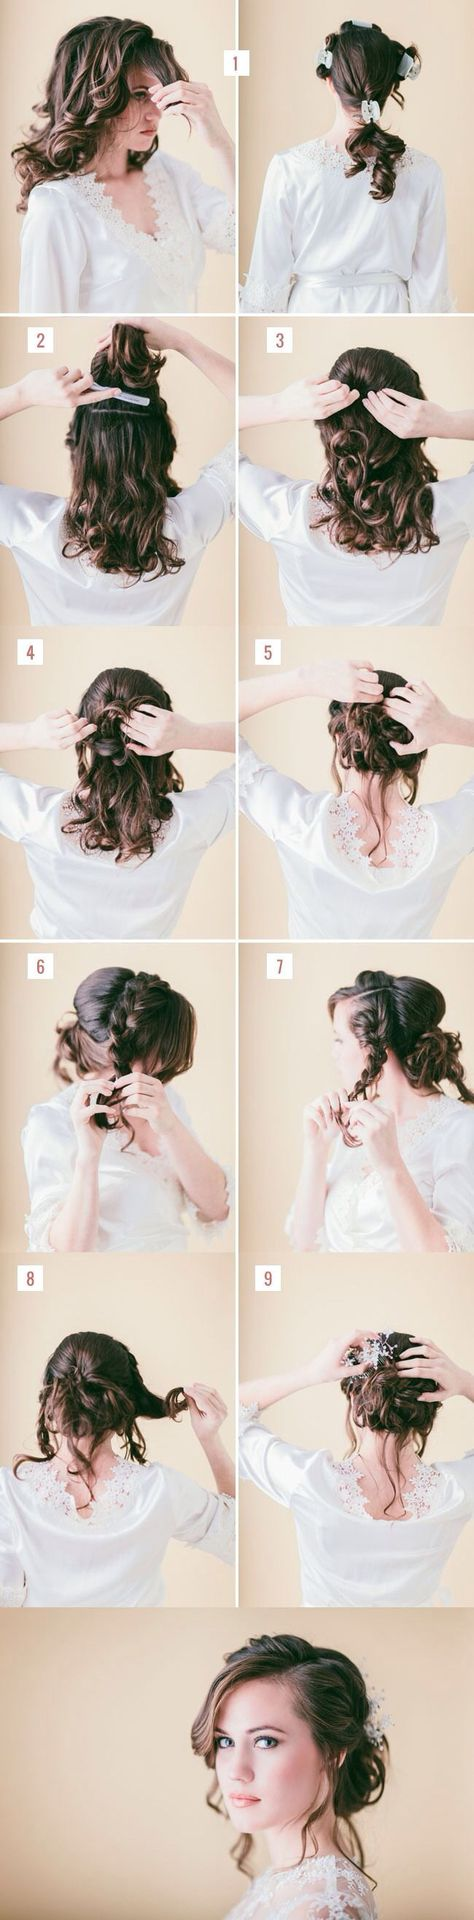 20 Easy Updo Hairstyles for Medium Hair | Updos, Curly and Romantic